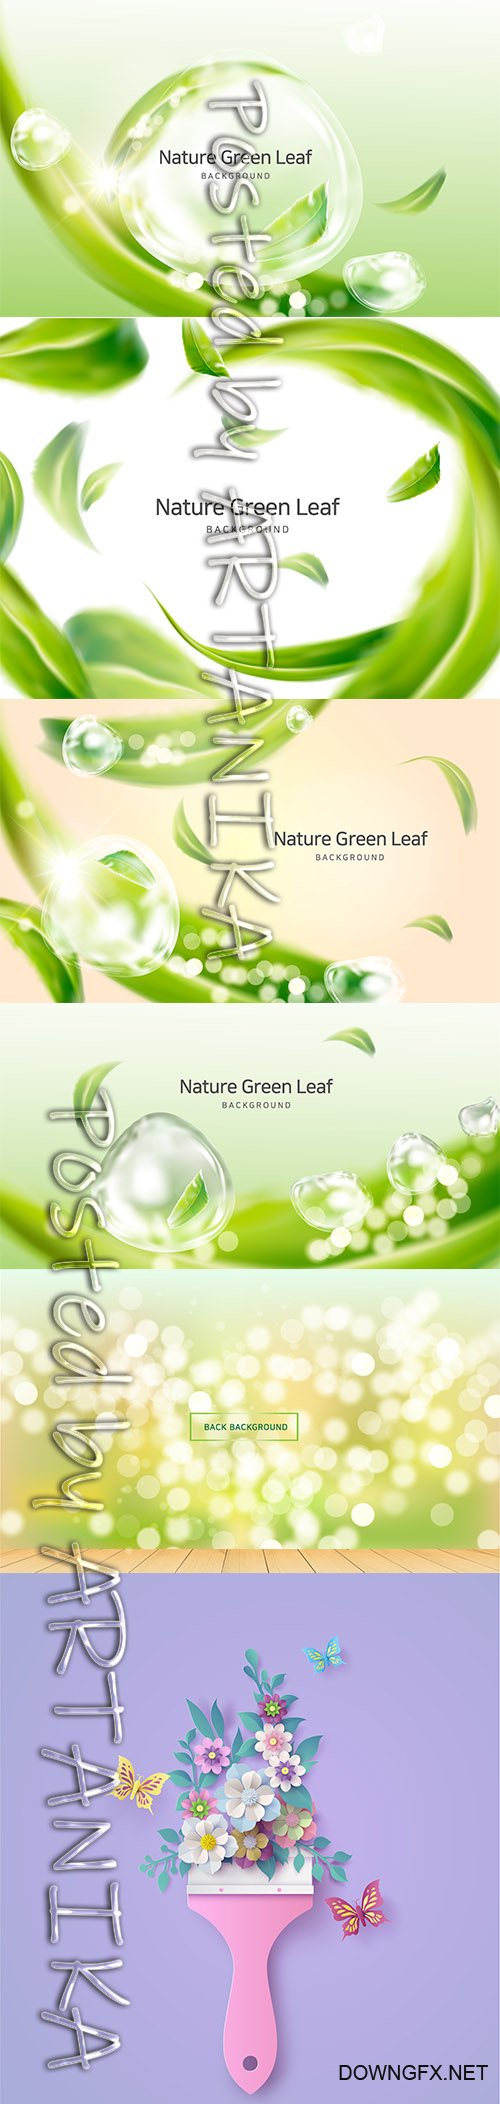 Nature Clean Air and Spring Leaves Illustrations